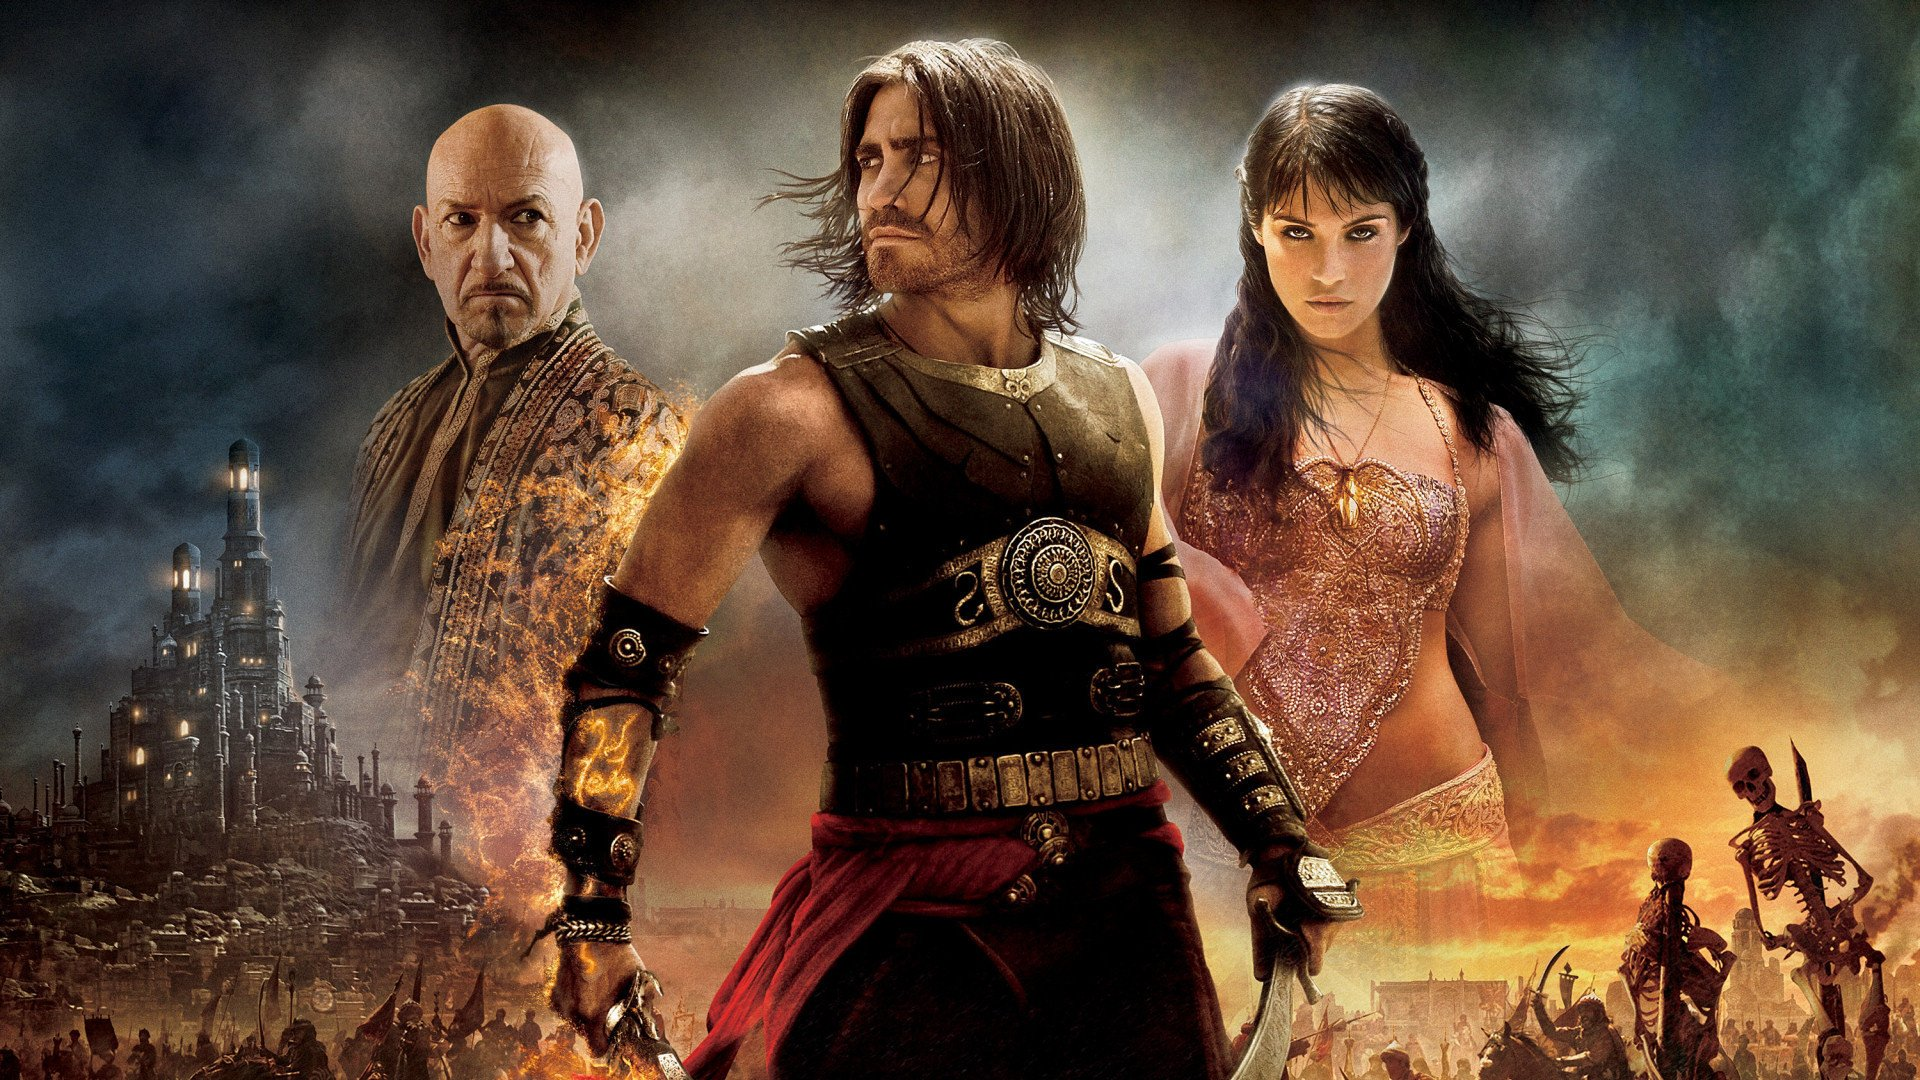 Prince Of Persia The Sands Of Time Hd Wallpaper Background